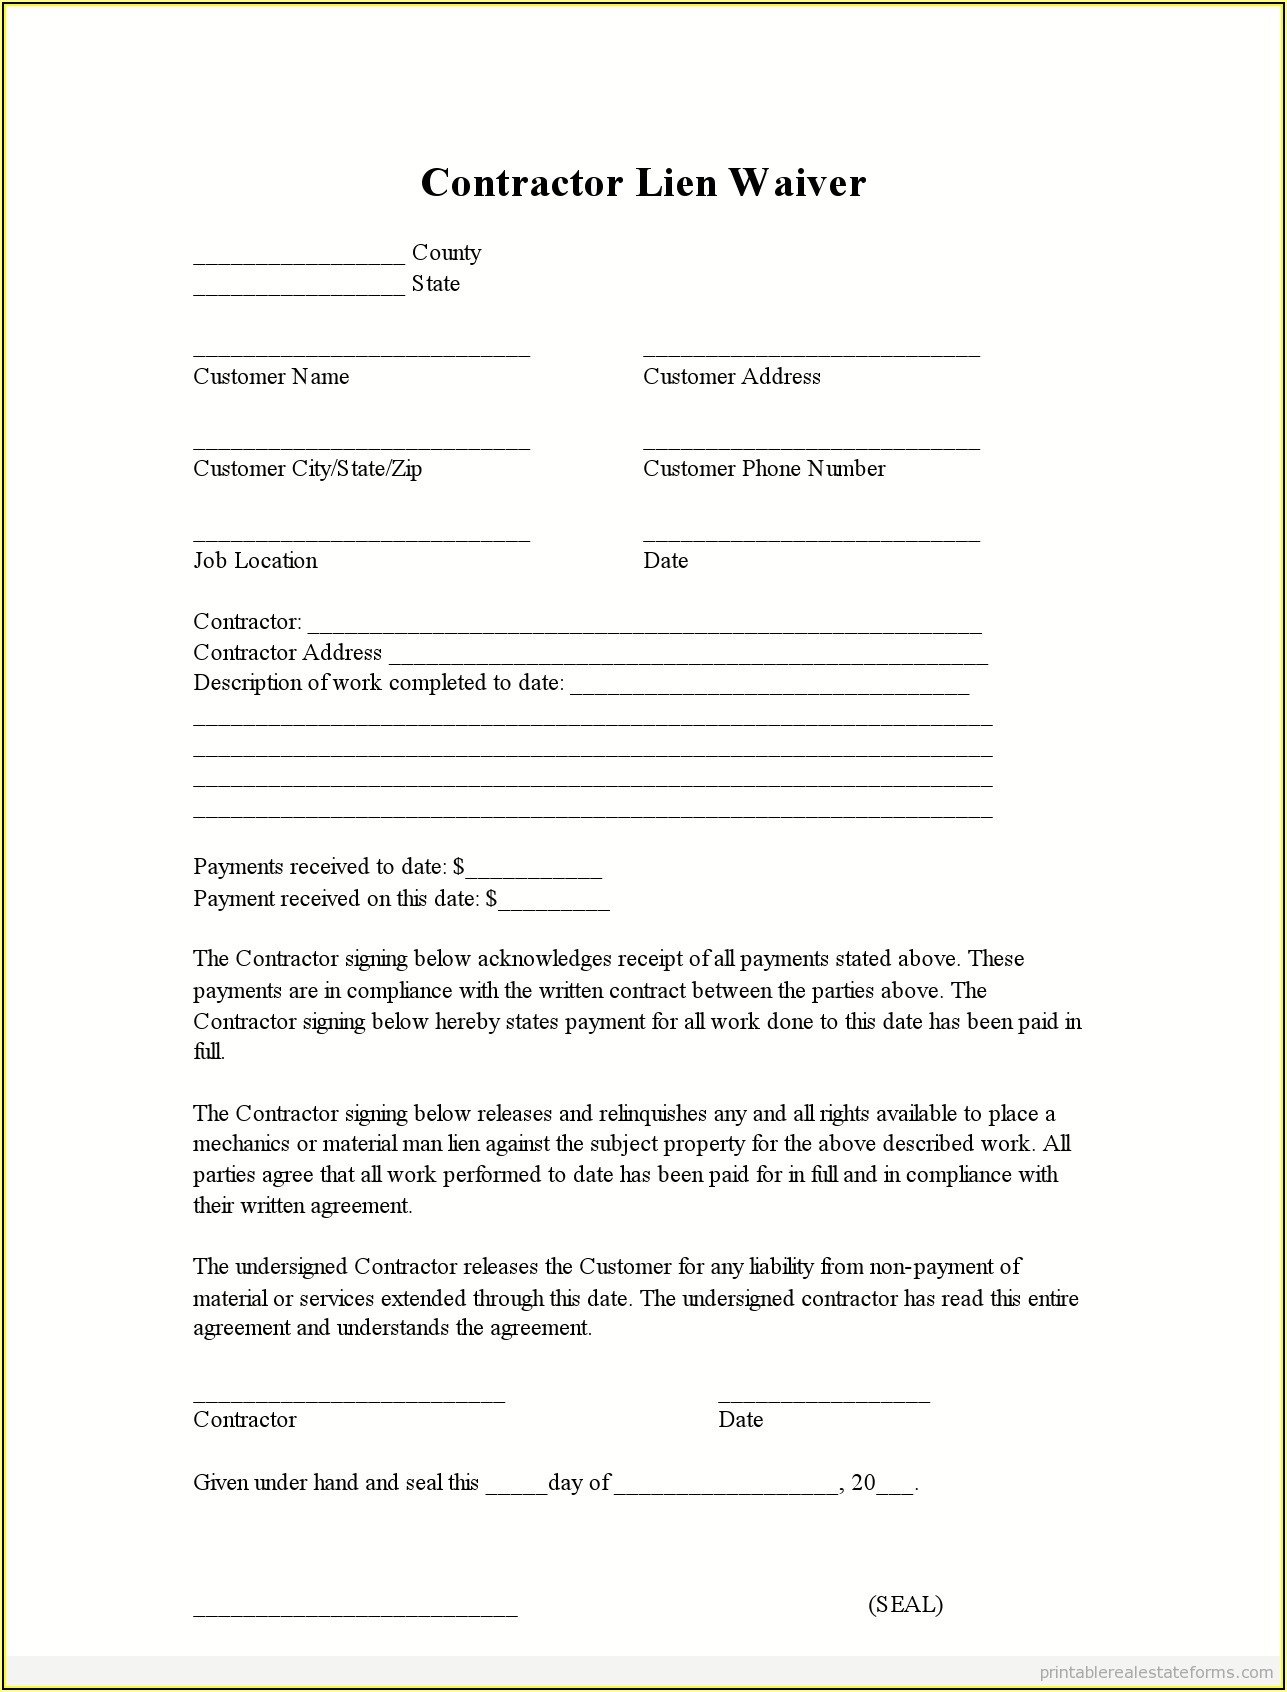 Birthday Party Waiver Form